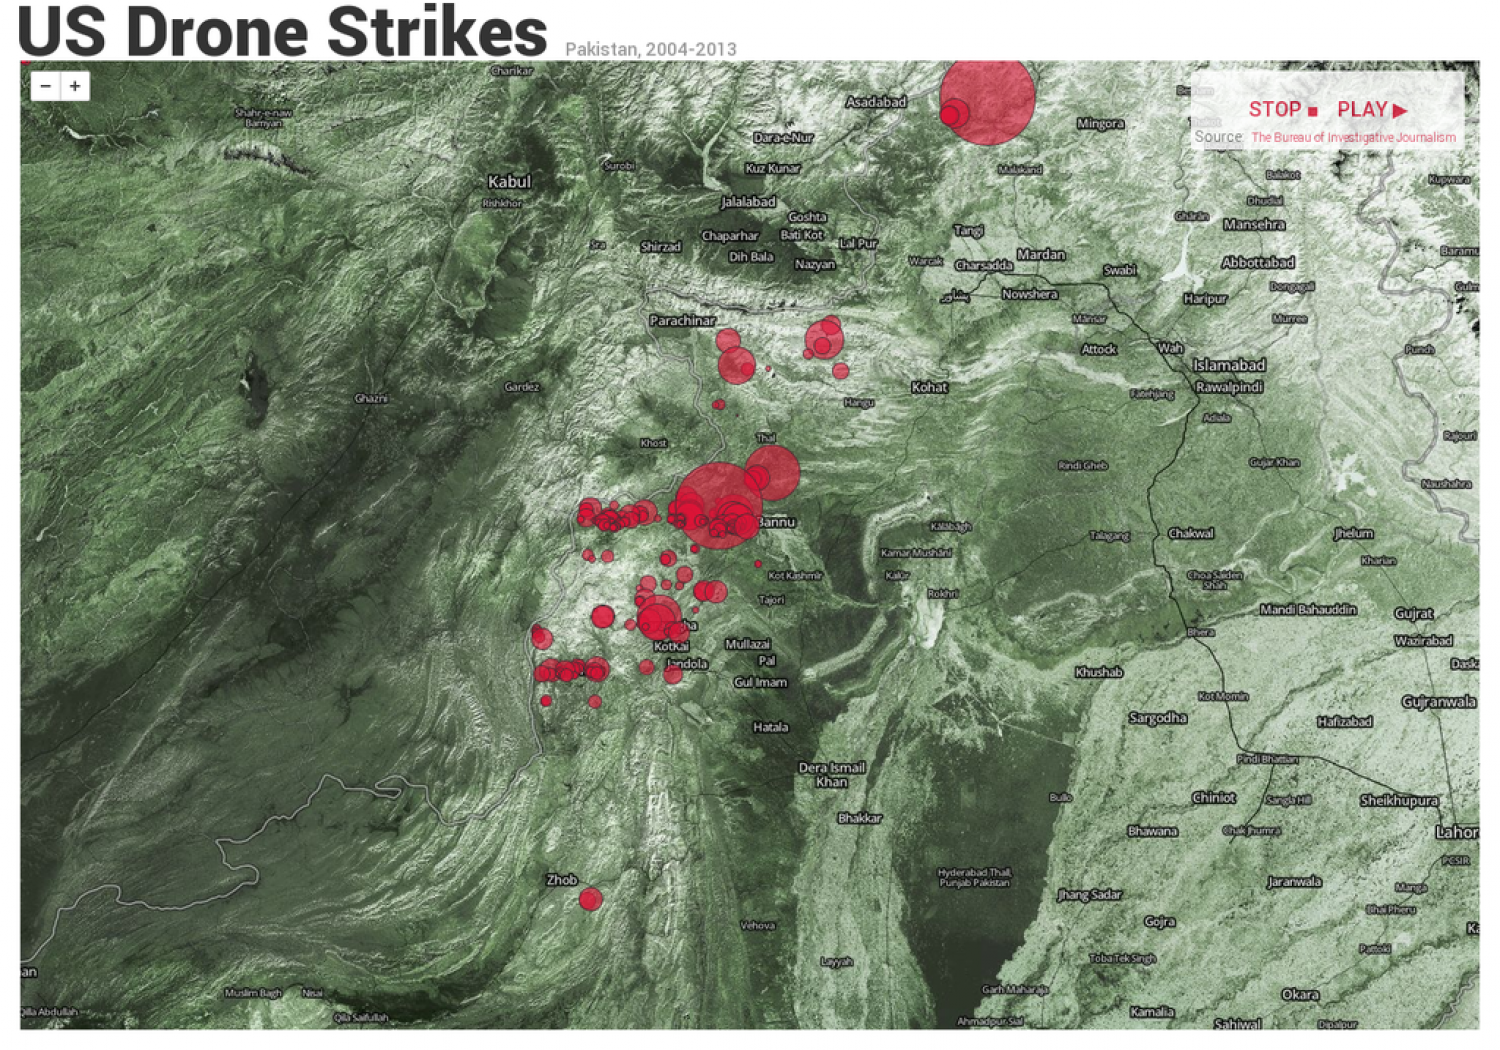 Real-Time U.S. Drone Strikes in Pakistan Infographic